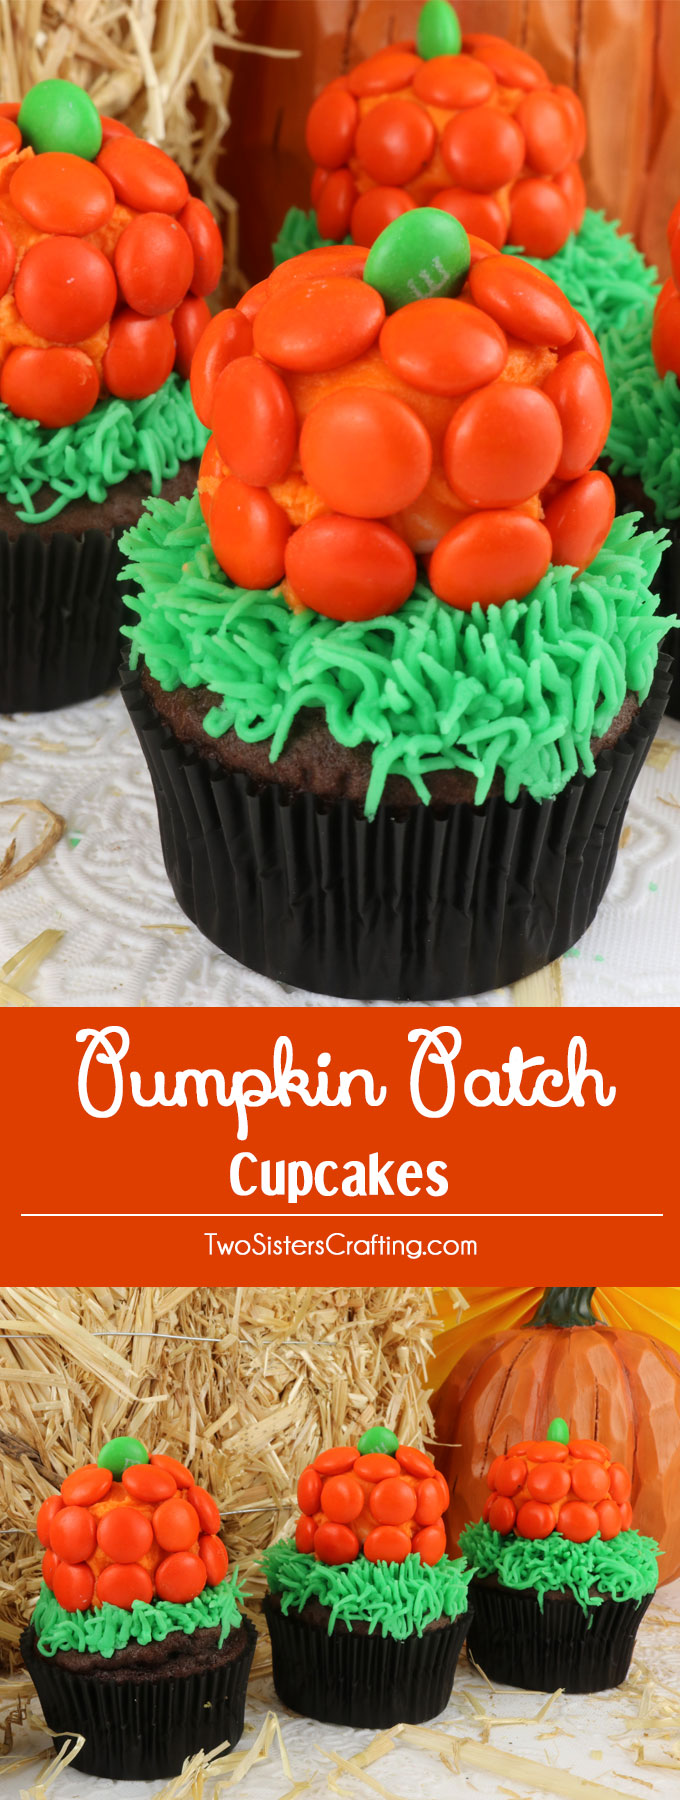 These Halloween Pumpkin Patch Cupcakes are super adorable Halloween cupcakes and very easy to make. They are a great Halloween dessert for a neighborhood party or a fun classroom Halloween treat. Pin this adorable Pumpkin dessert for later and follow us for more fun Halloween Food Ideas.